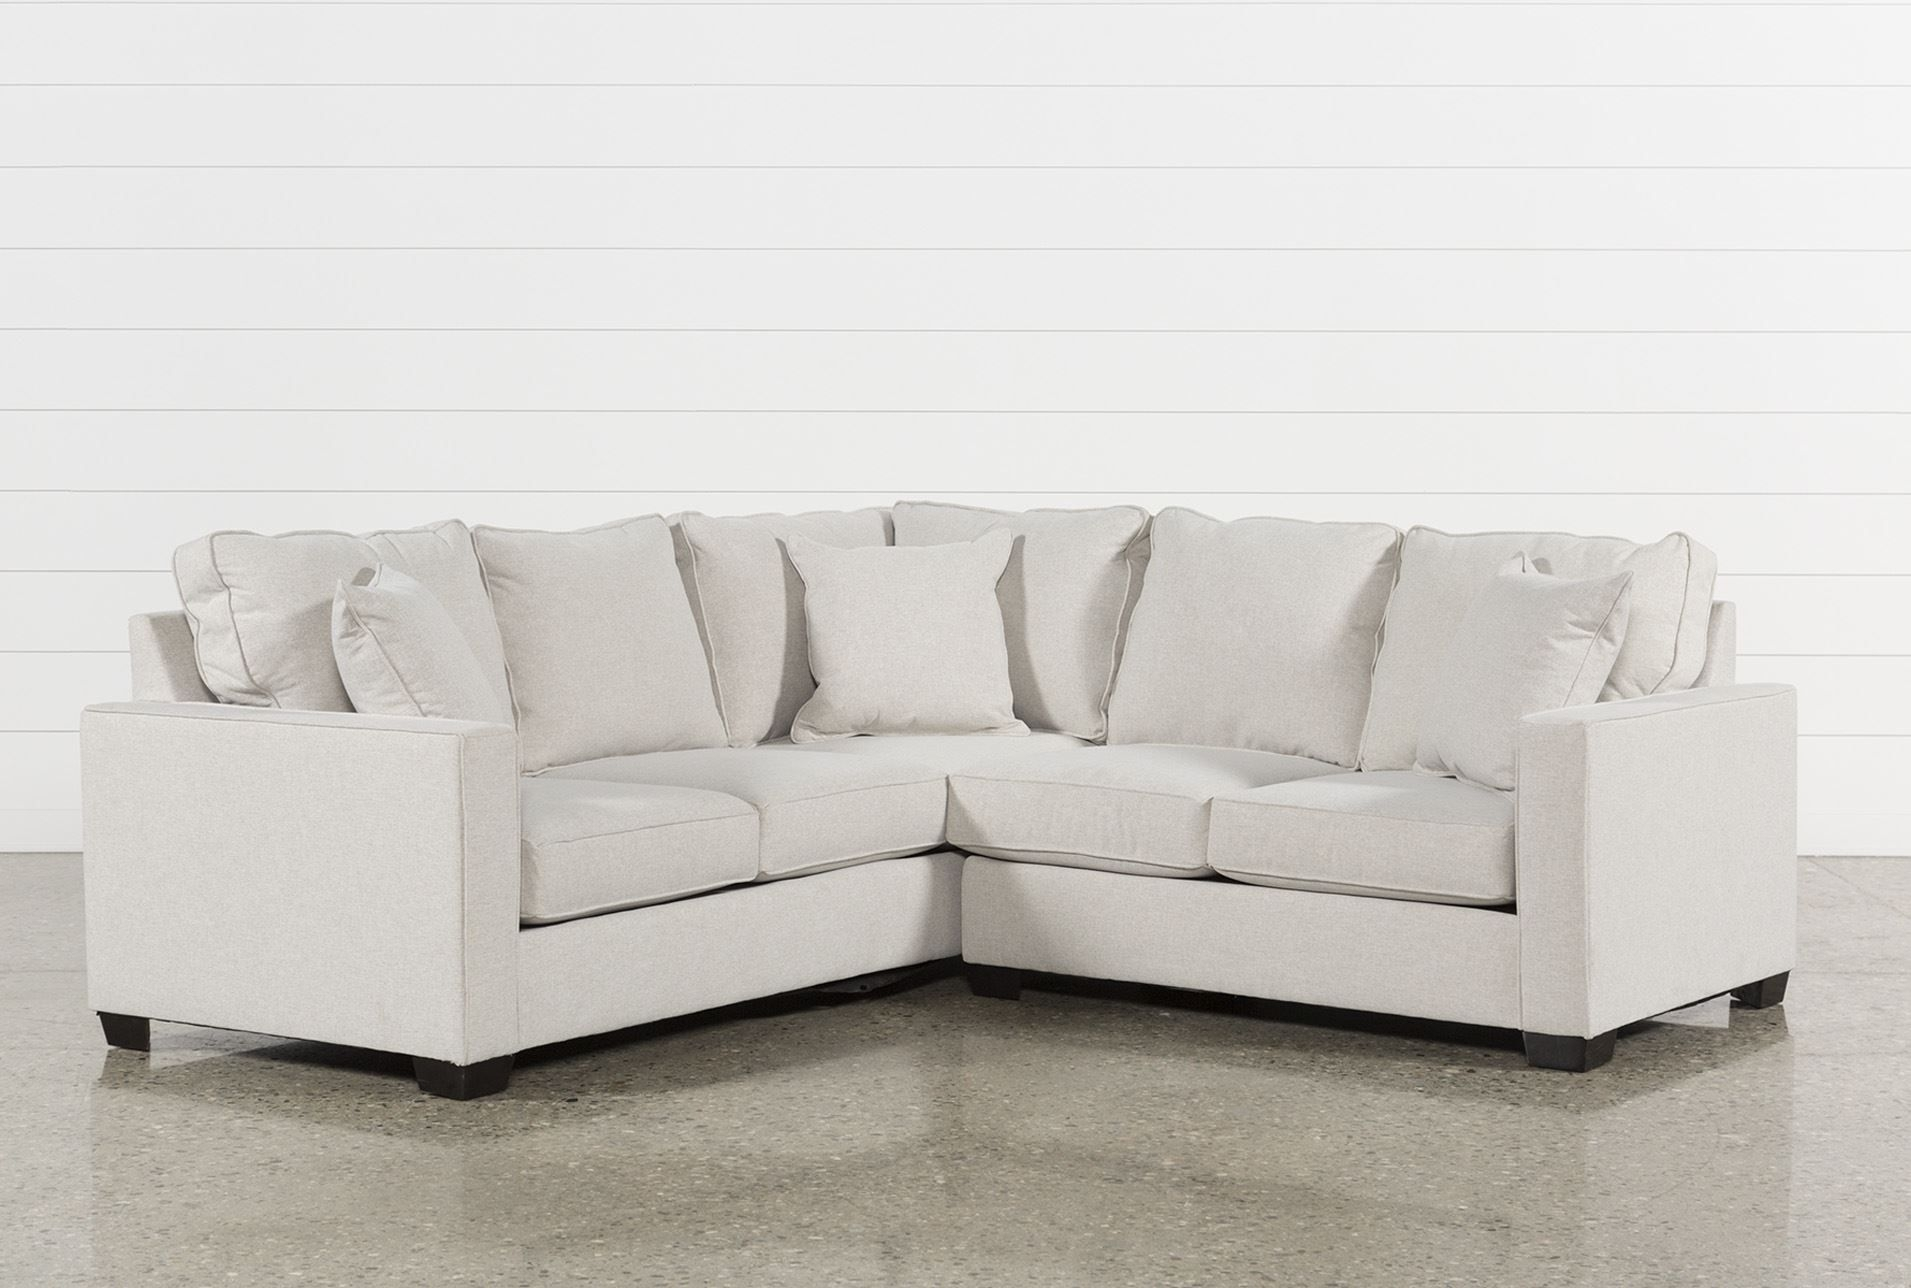 Raphael Ii Flax 2 Piece Sectionalw/raf Loveseat, Beige, Sofas Throughout Marissa Ii 3 Piece Sectionals (Image 12 of 25)